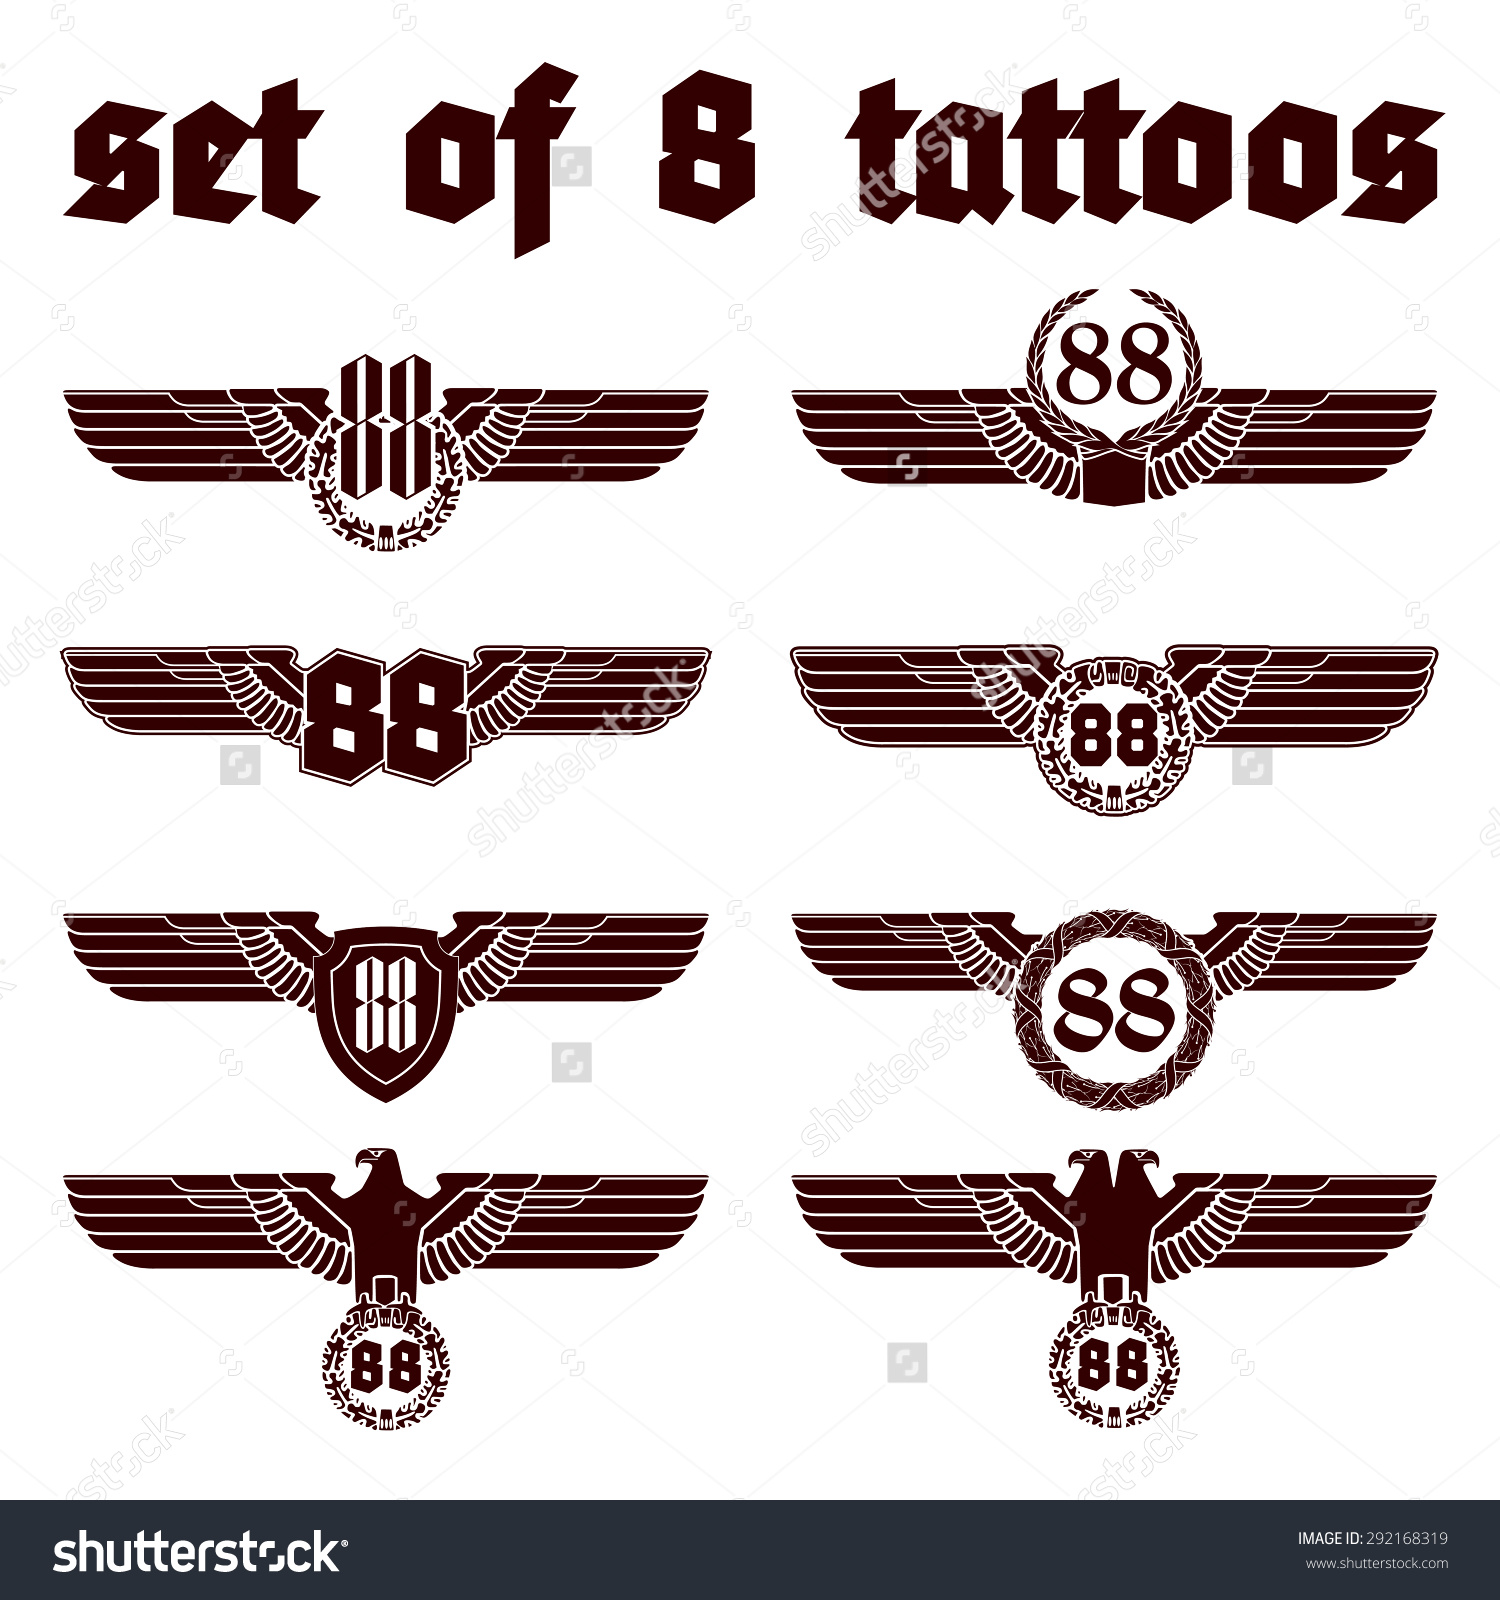 nazi war eagle tattoo images galleries with a bite. Black Bedroom Furniture Sets. Home Design Ideas